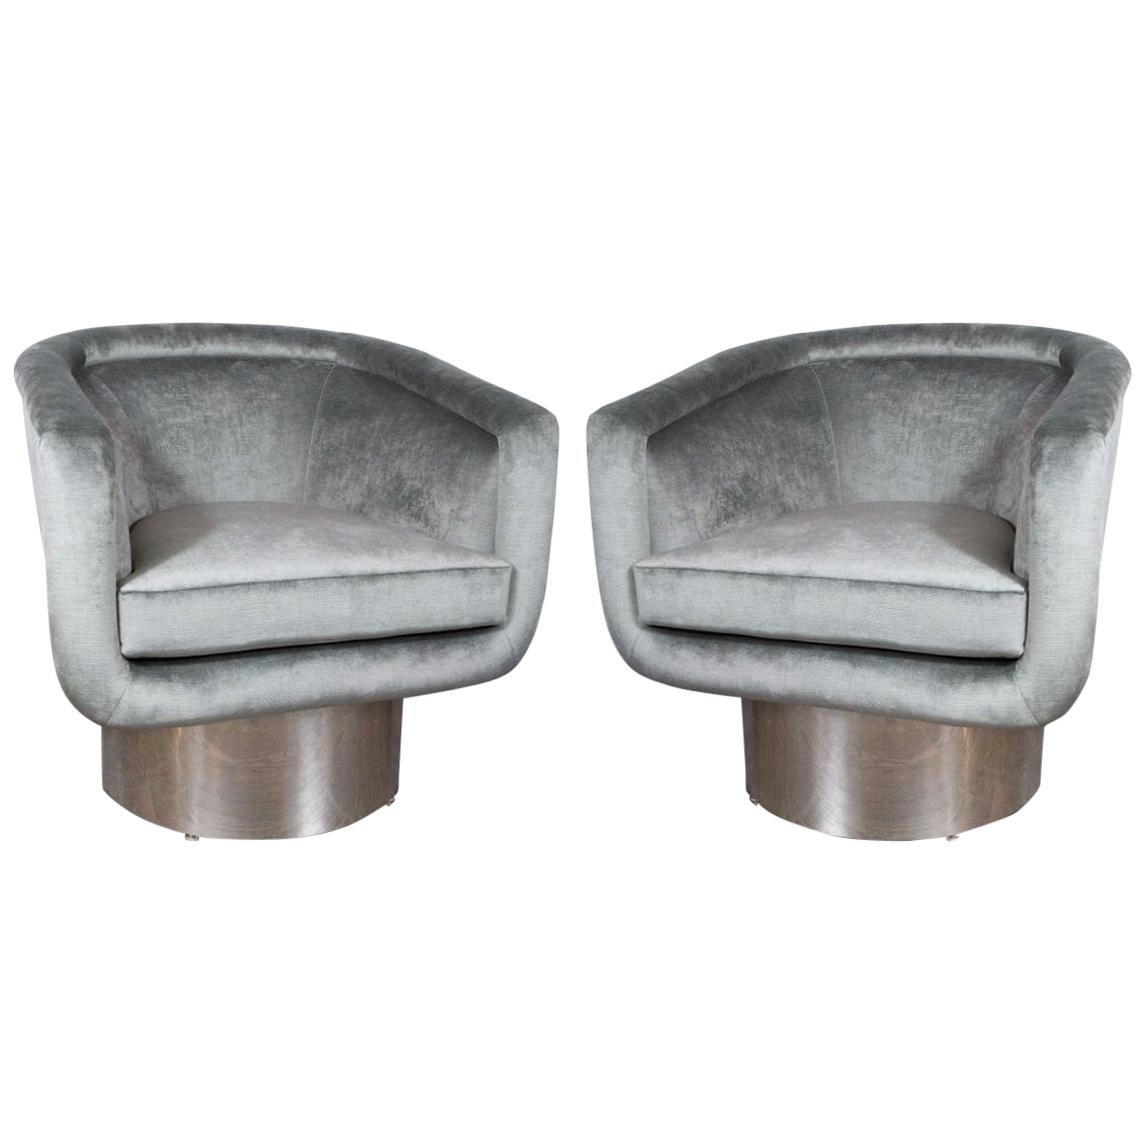 Pair of Chrome Swivel Chairs by Leon Rosen for Pace